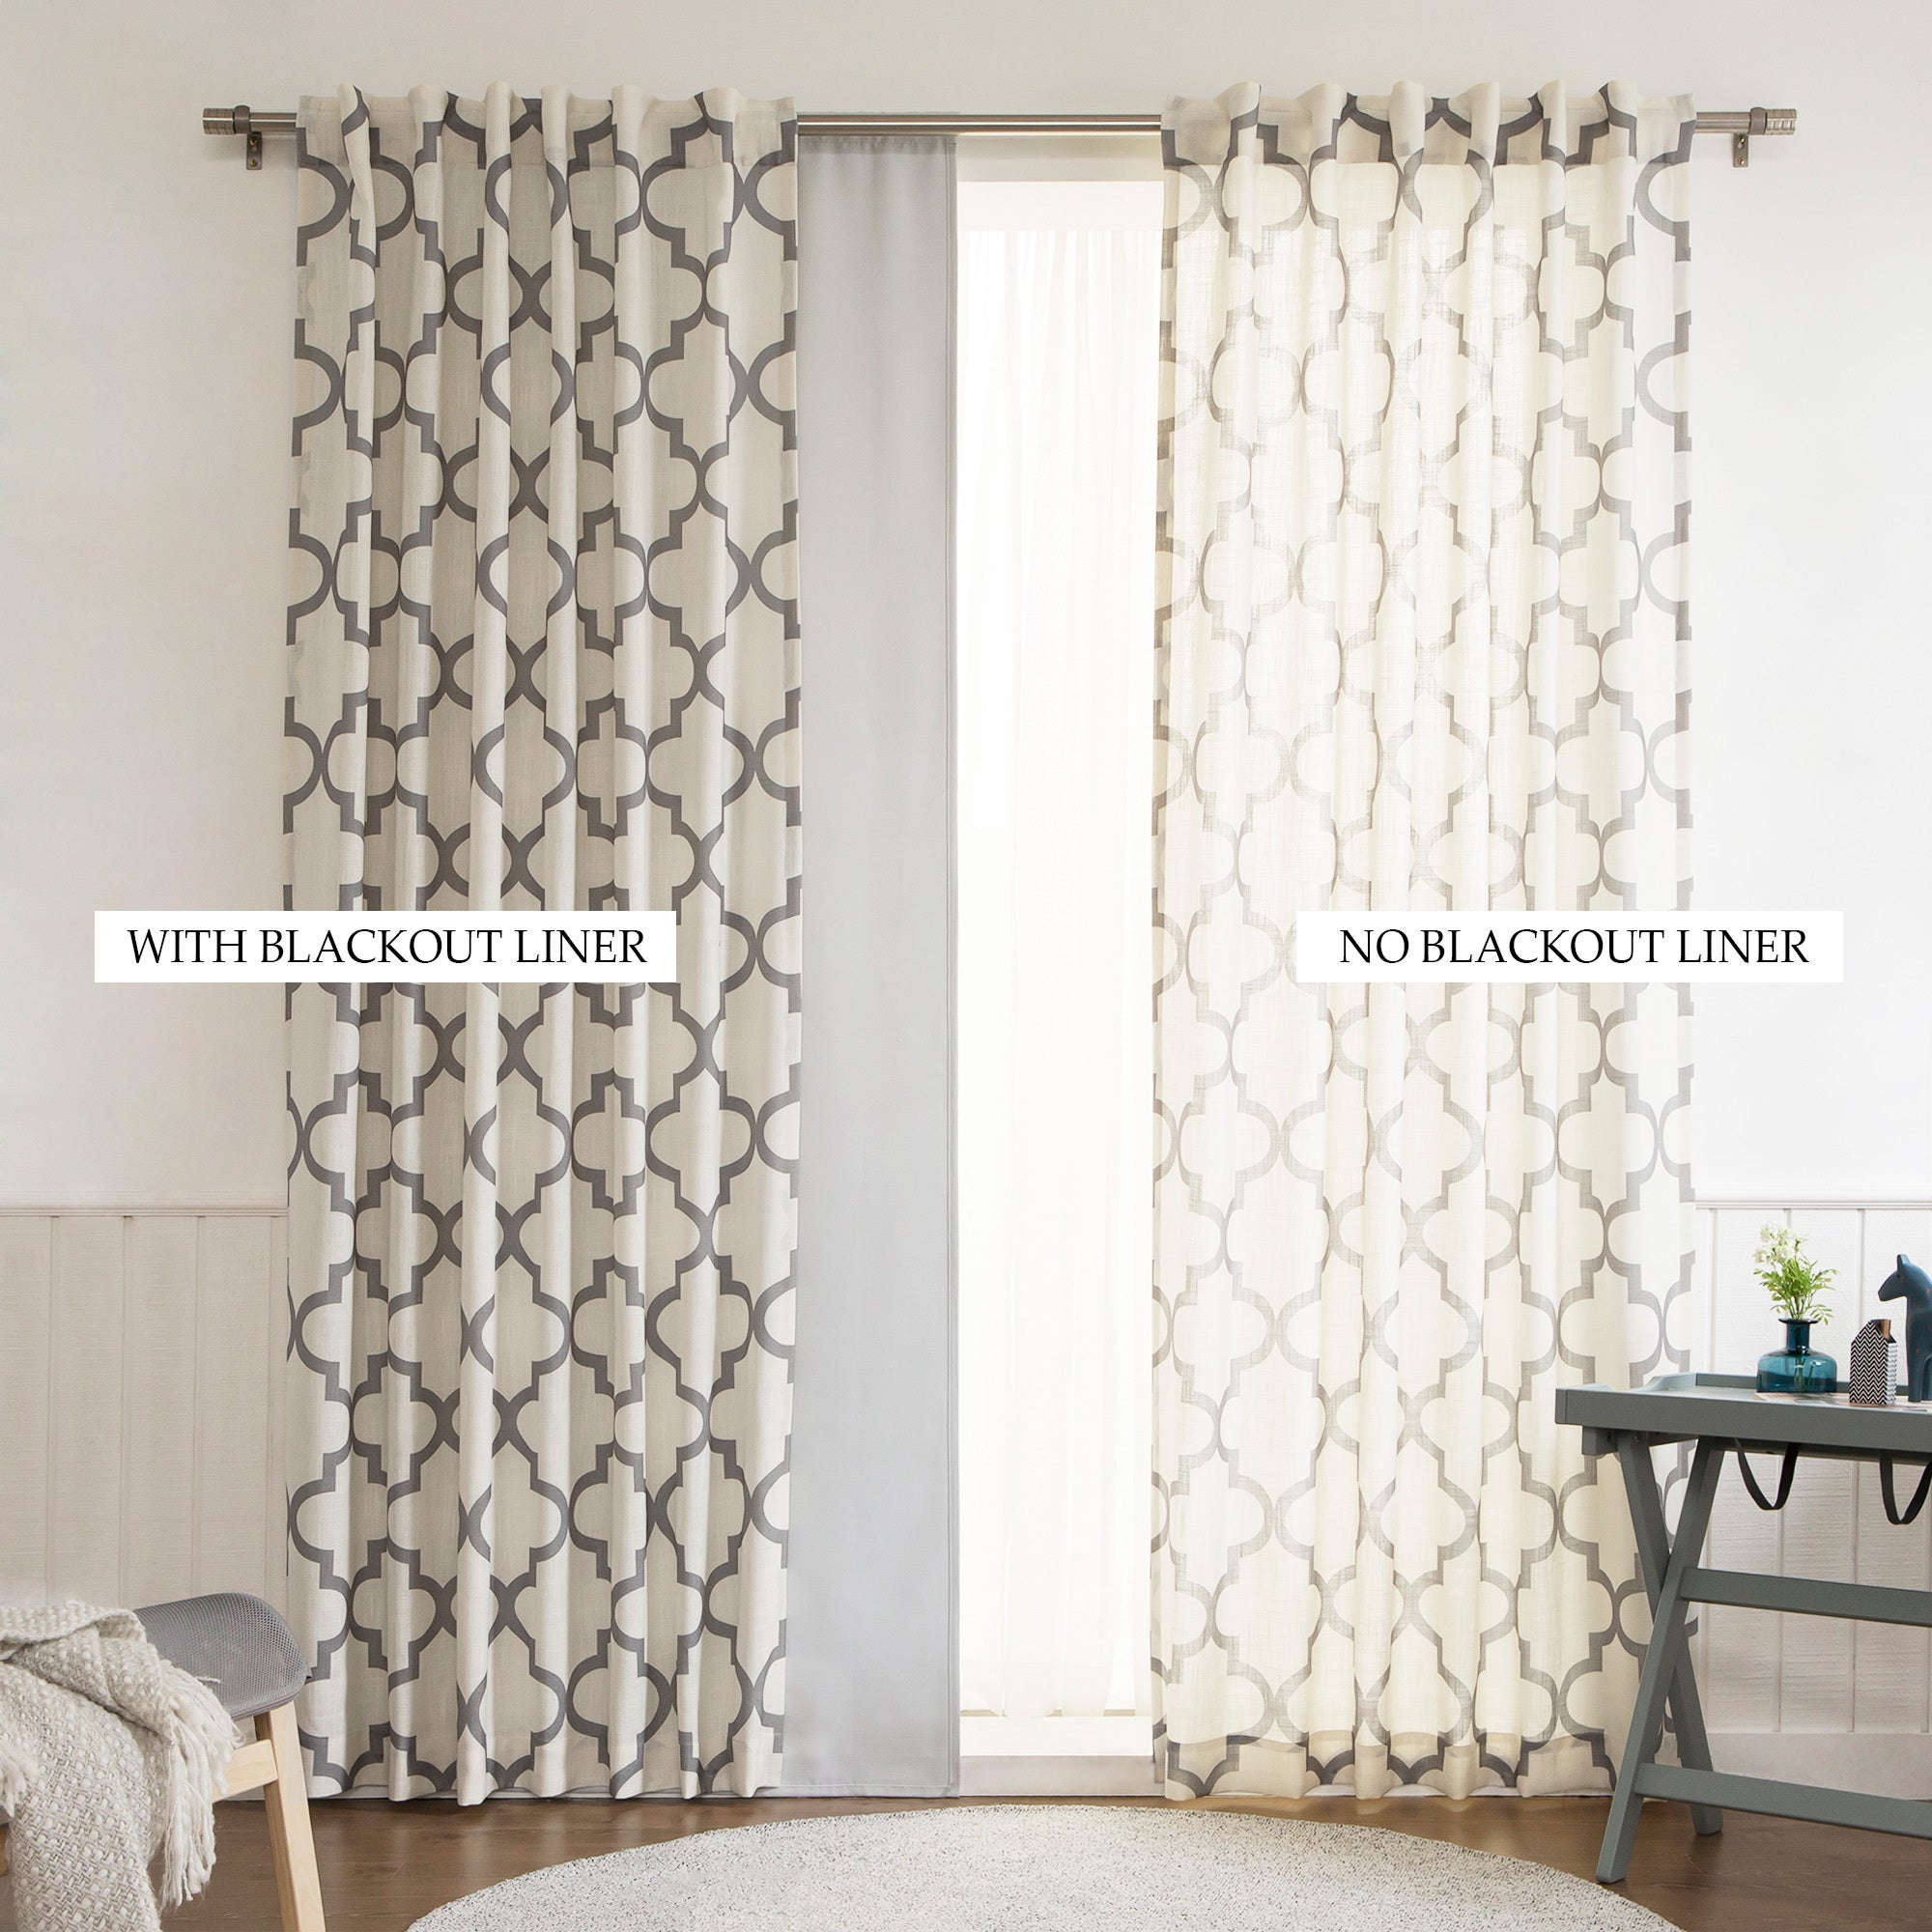 home pair by kitchen inch thermaliner white liner jhl panel drape amazon com dp drapes eclipse blackout